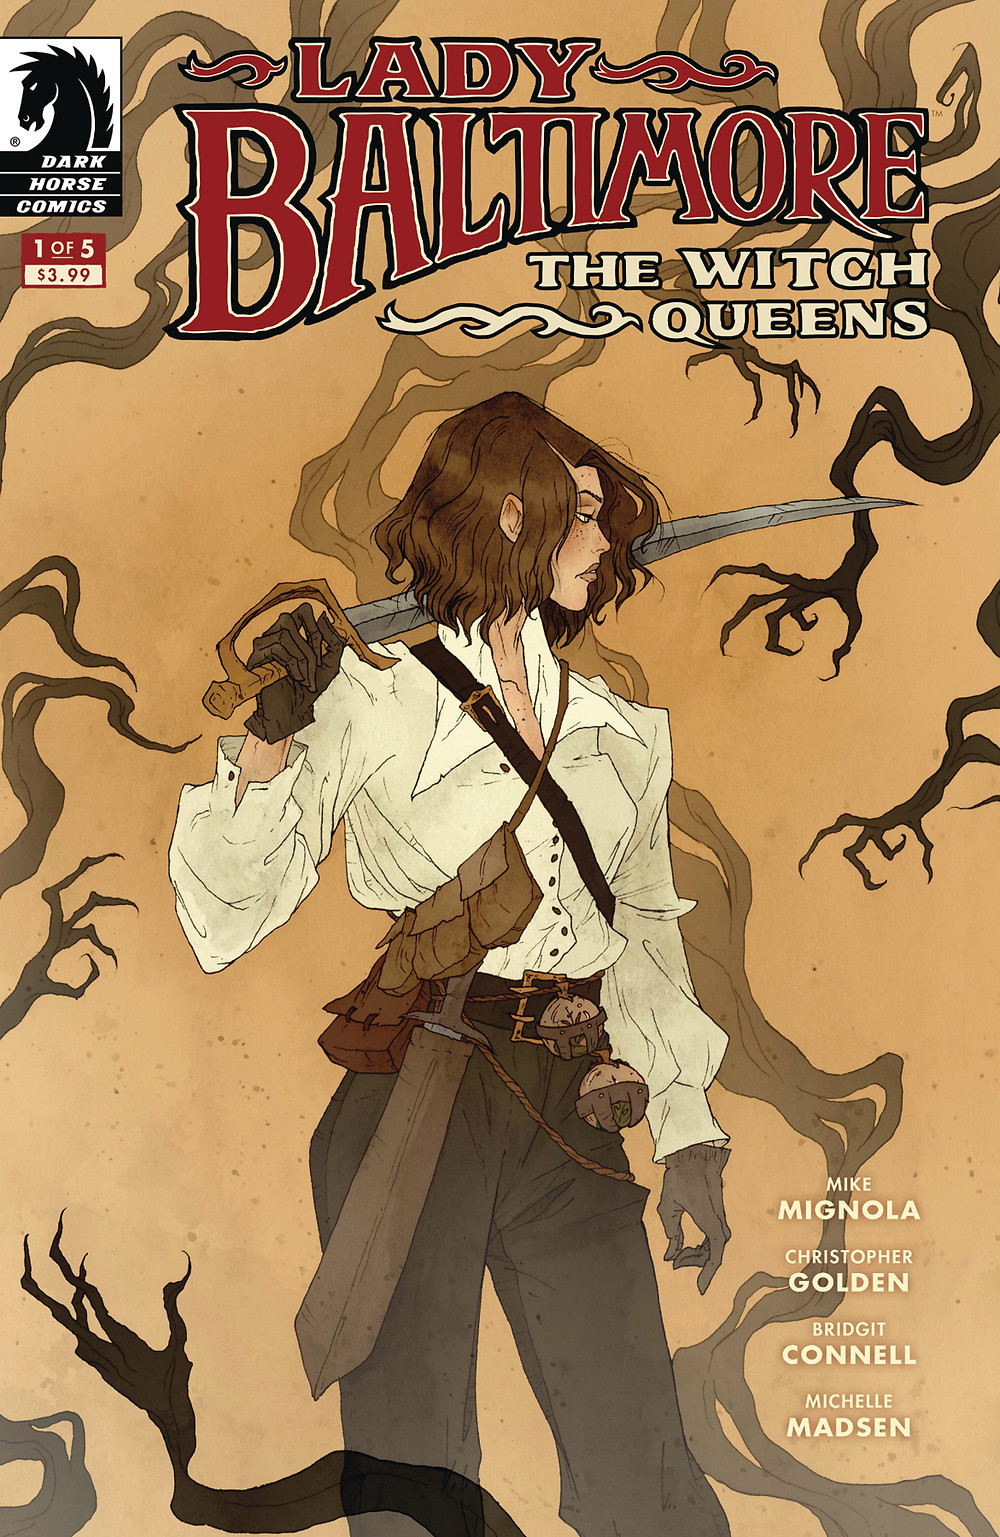 Lady Baltimore Witch Queens #1 Cover